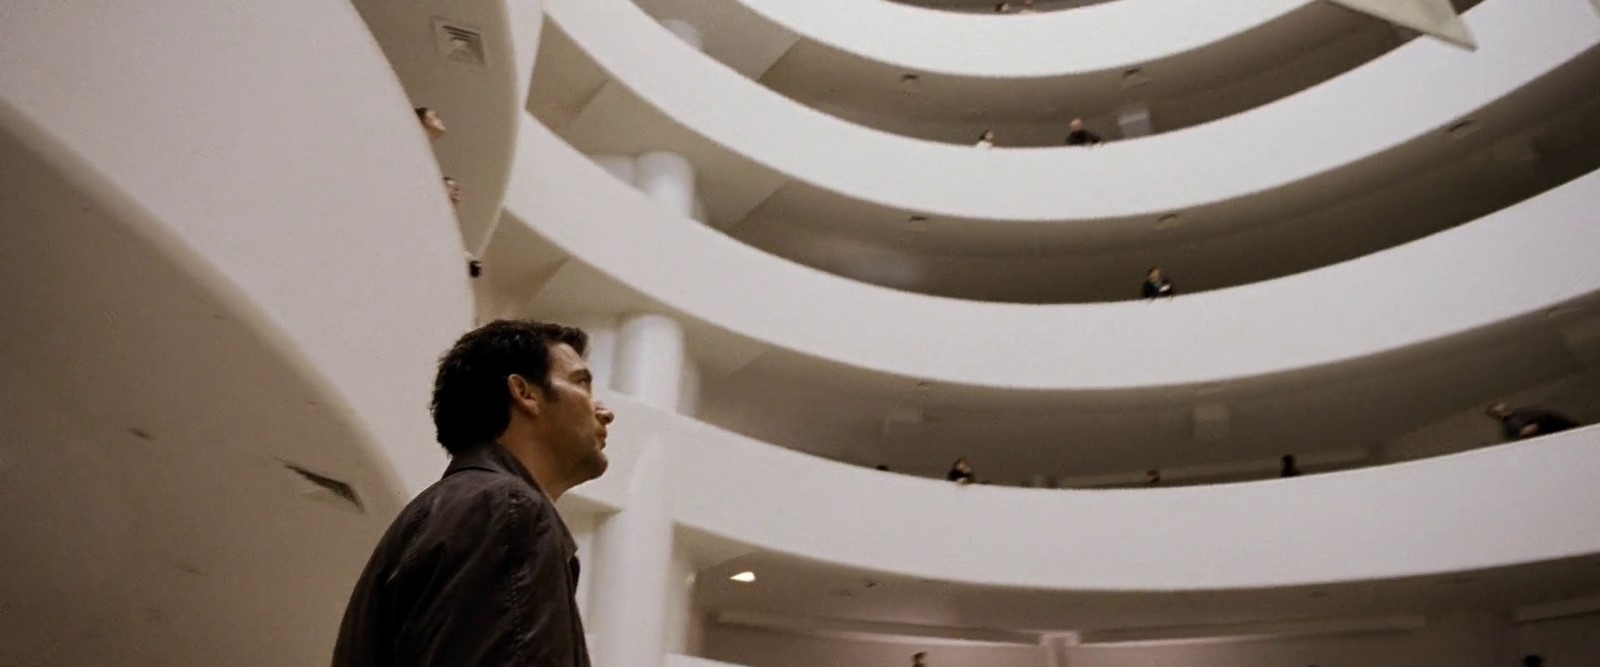 15 Famous structures that have made cameos in famous movies - Sheet12